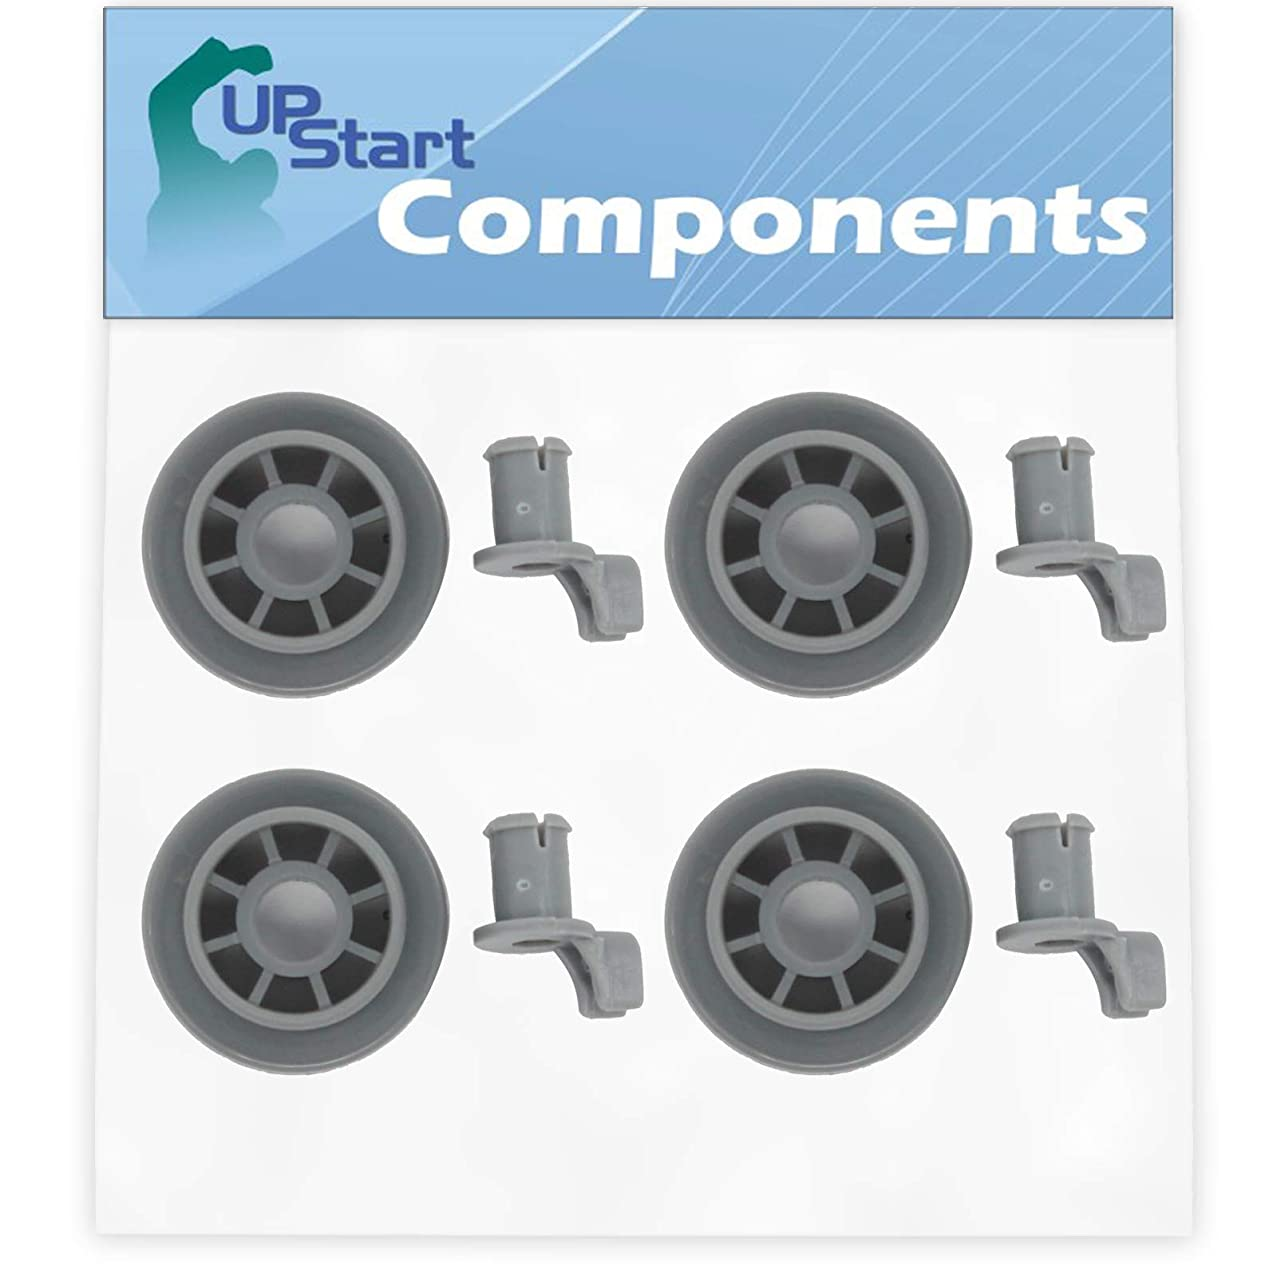 4-Pack 165314 Dishwasher Lower Dishrack Wheel Replacement for Bosch SHX43C05UC/33 Dishwasher - Compatible with 00165314 Lower Rack Roller - UpStart Components Brand